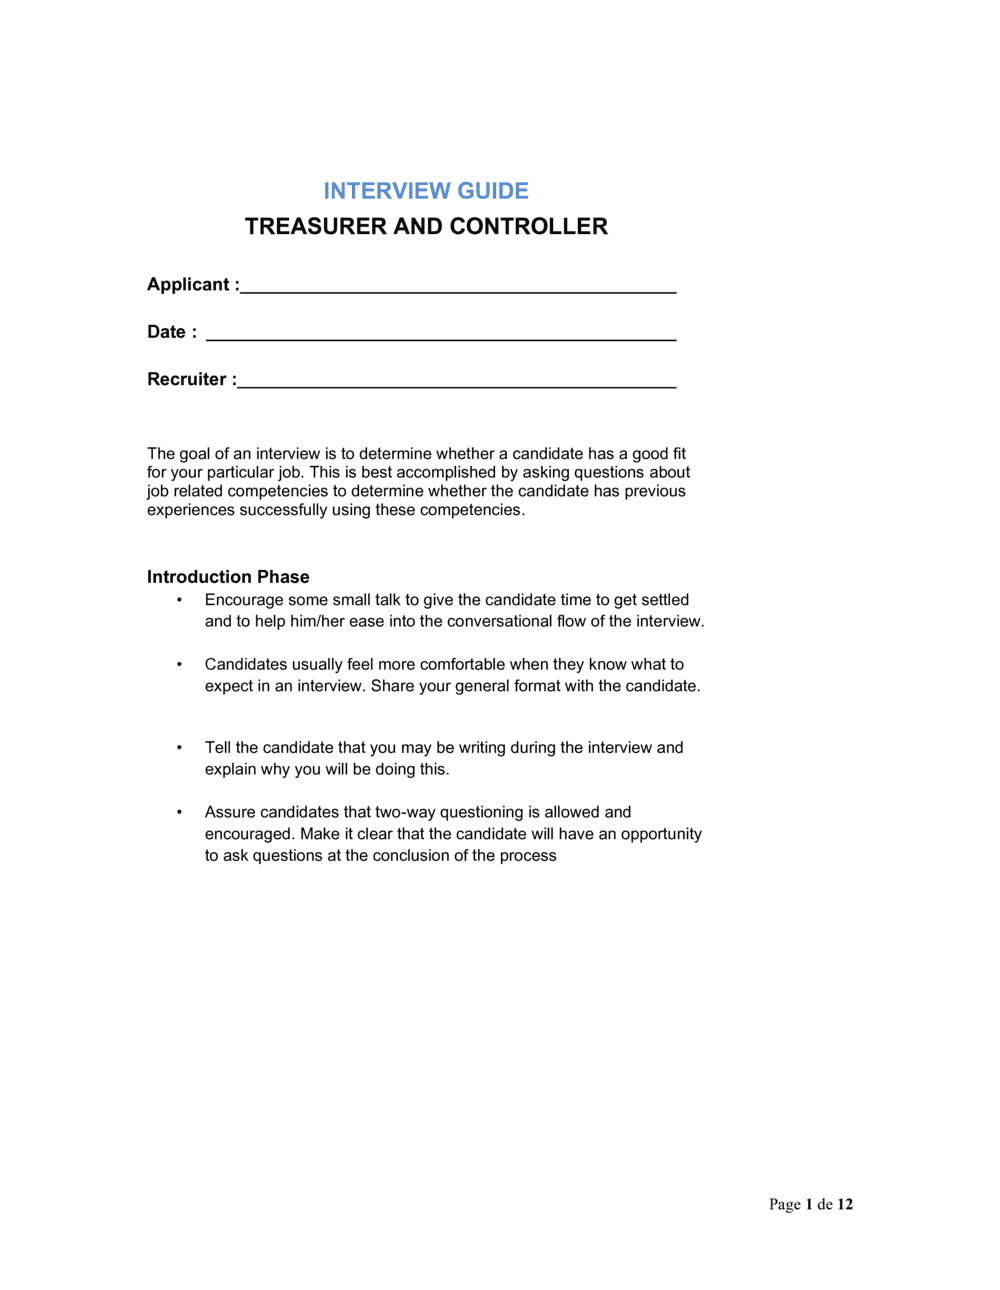 Business-in-a-Box's Interview Guide Treasurer and Controller Template